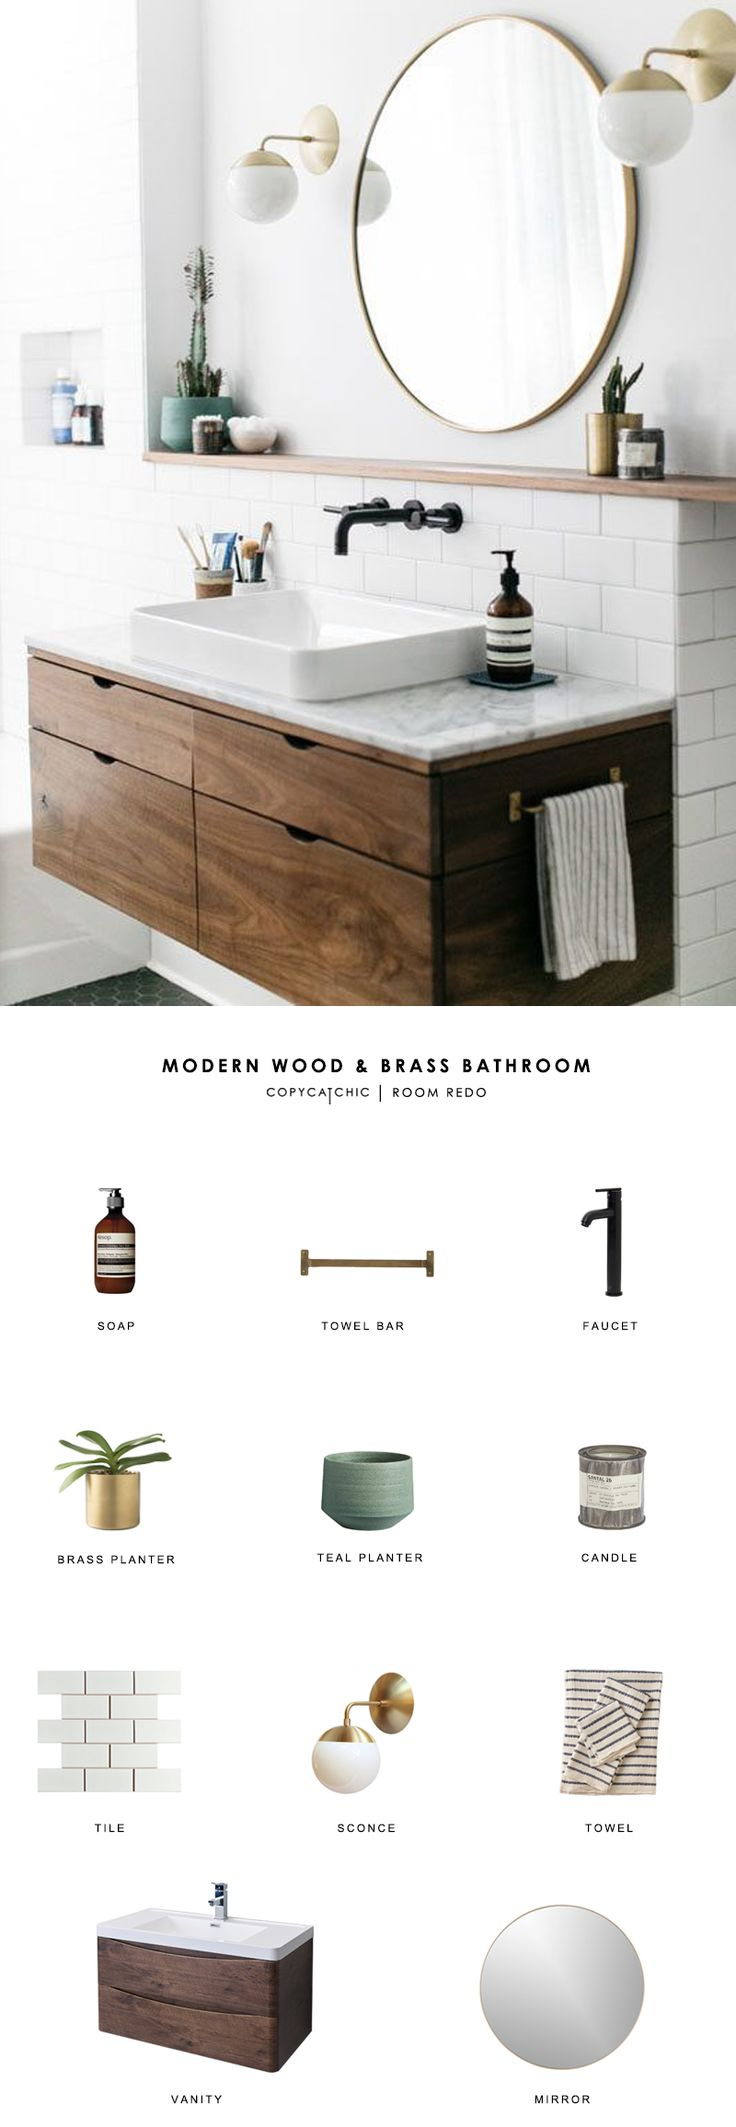 Copy Cat Chic Room Redo | Modern Wood and Brass Bathroom | Copy Cat Chic | Bloglovin'